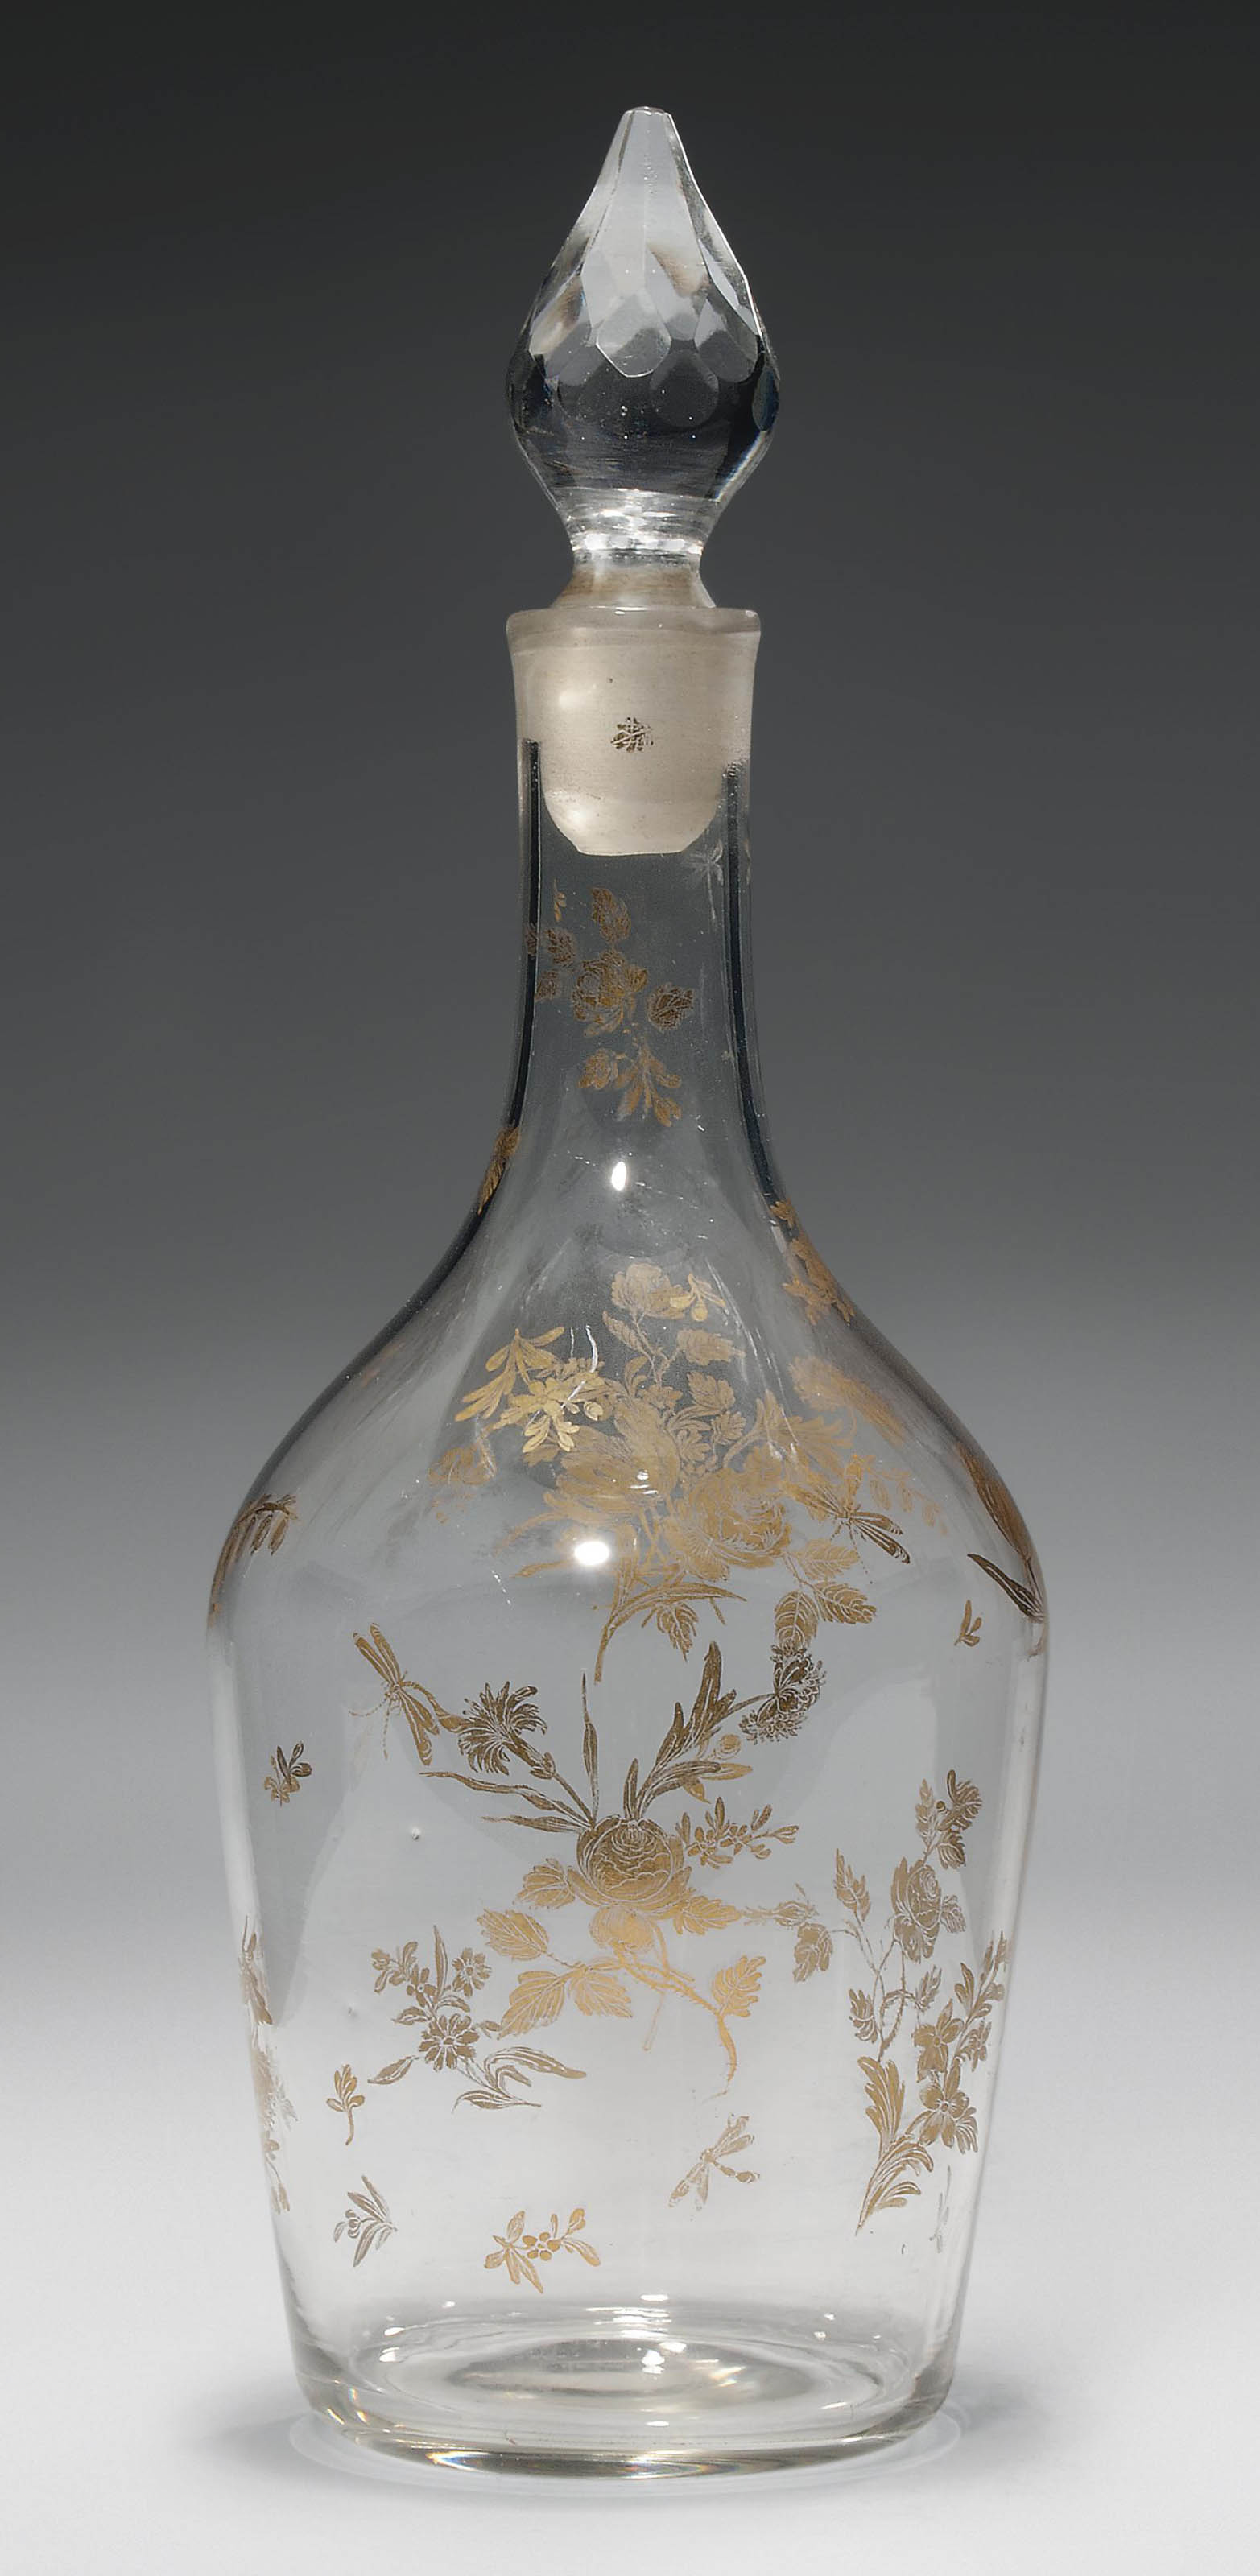 A GILT-DECORATED CLUB-SHAPED DECANTER AND STOPPER